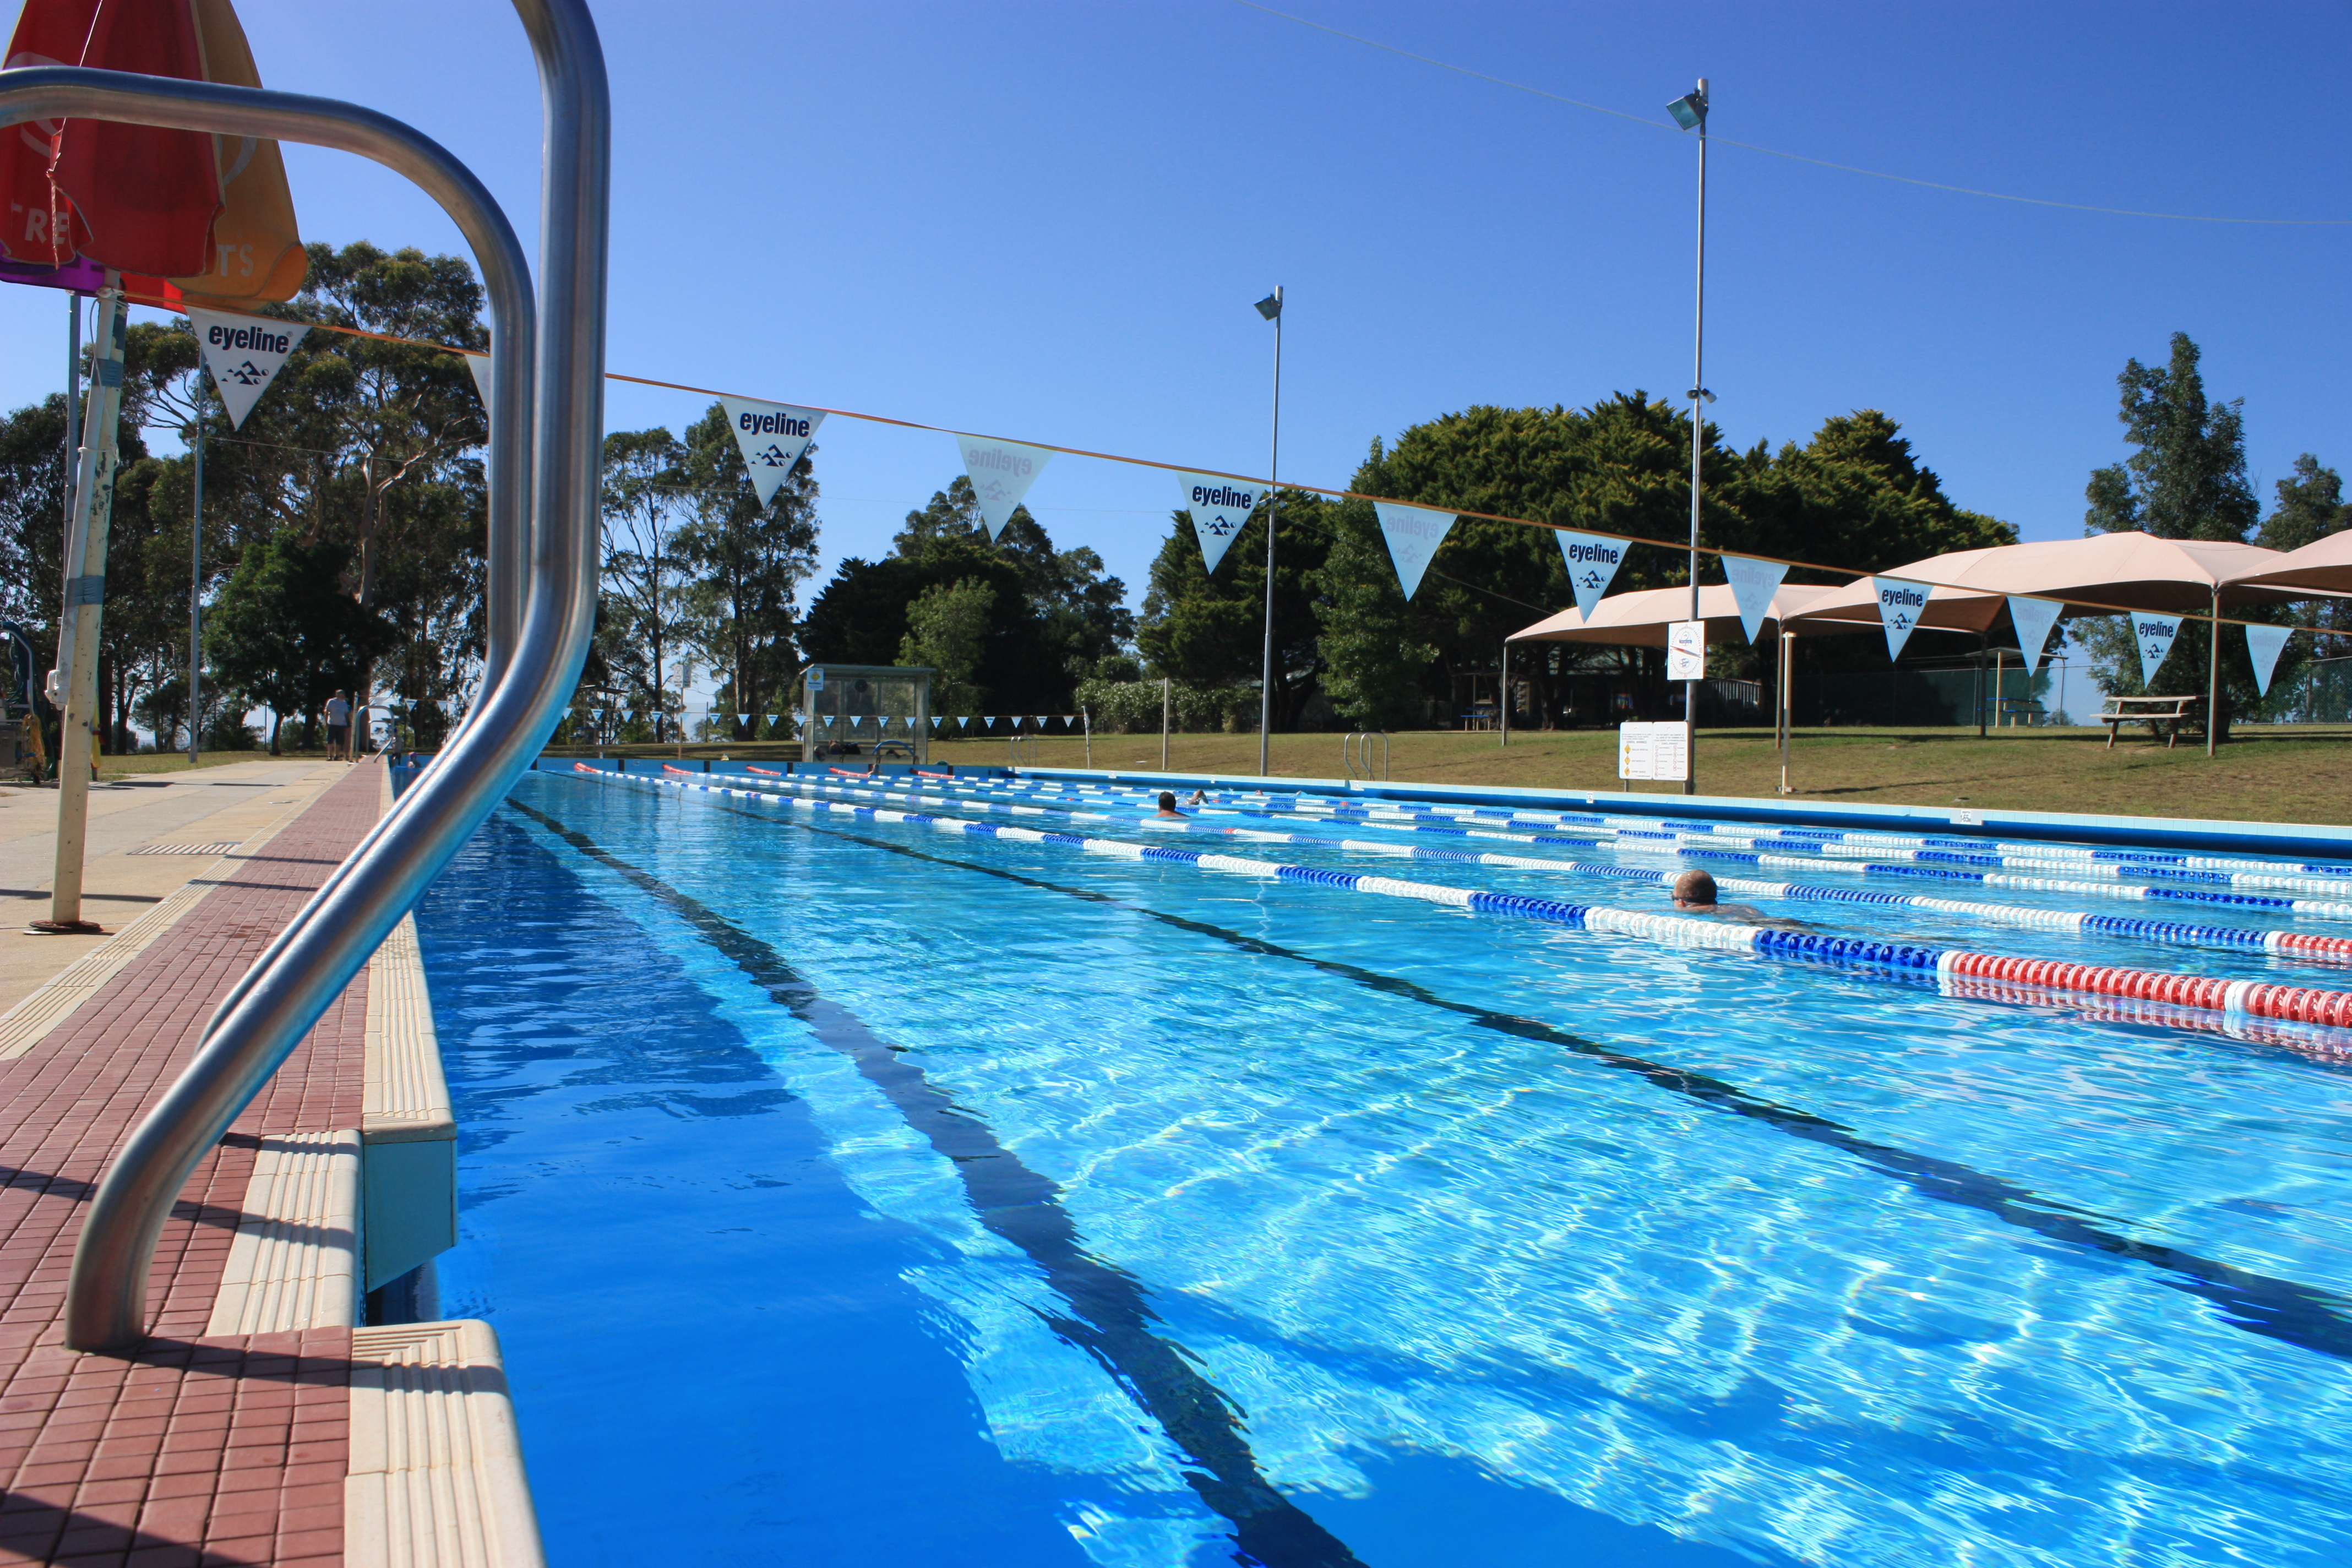 Bomaderry outdoor pool